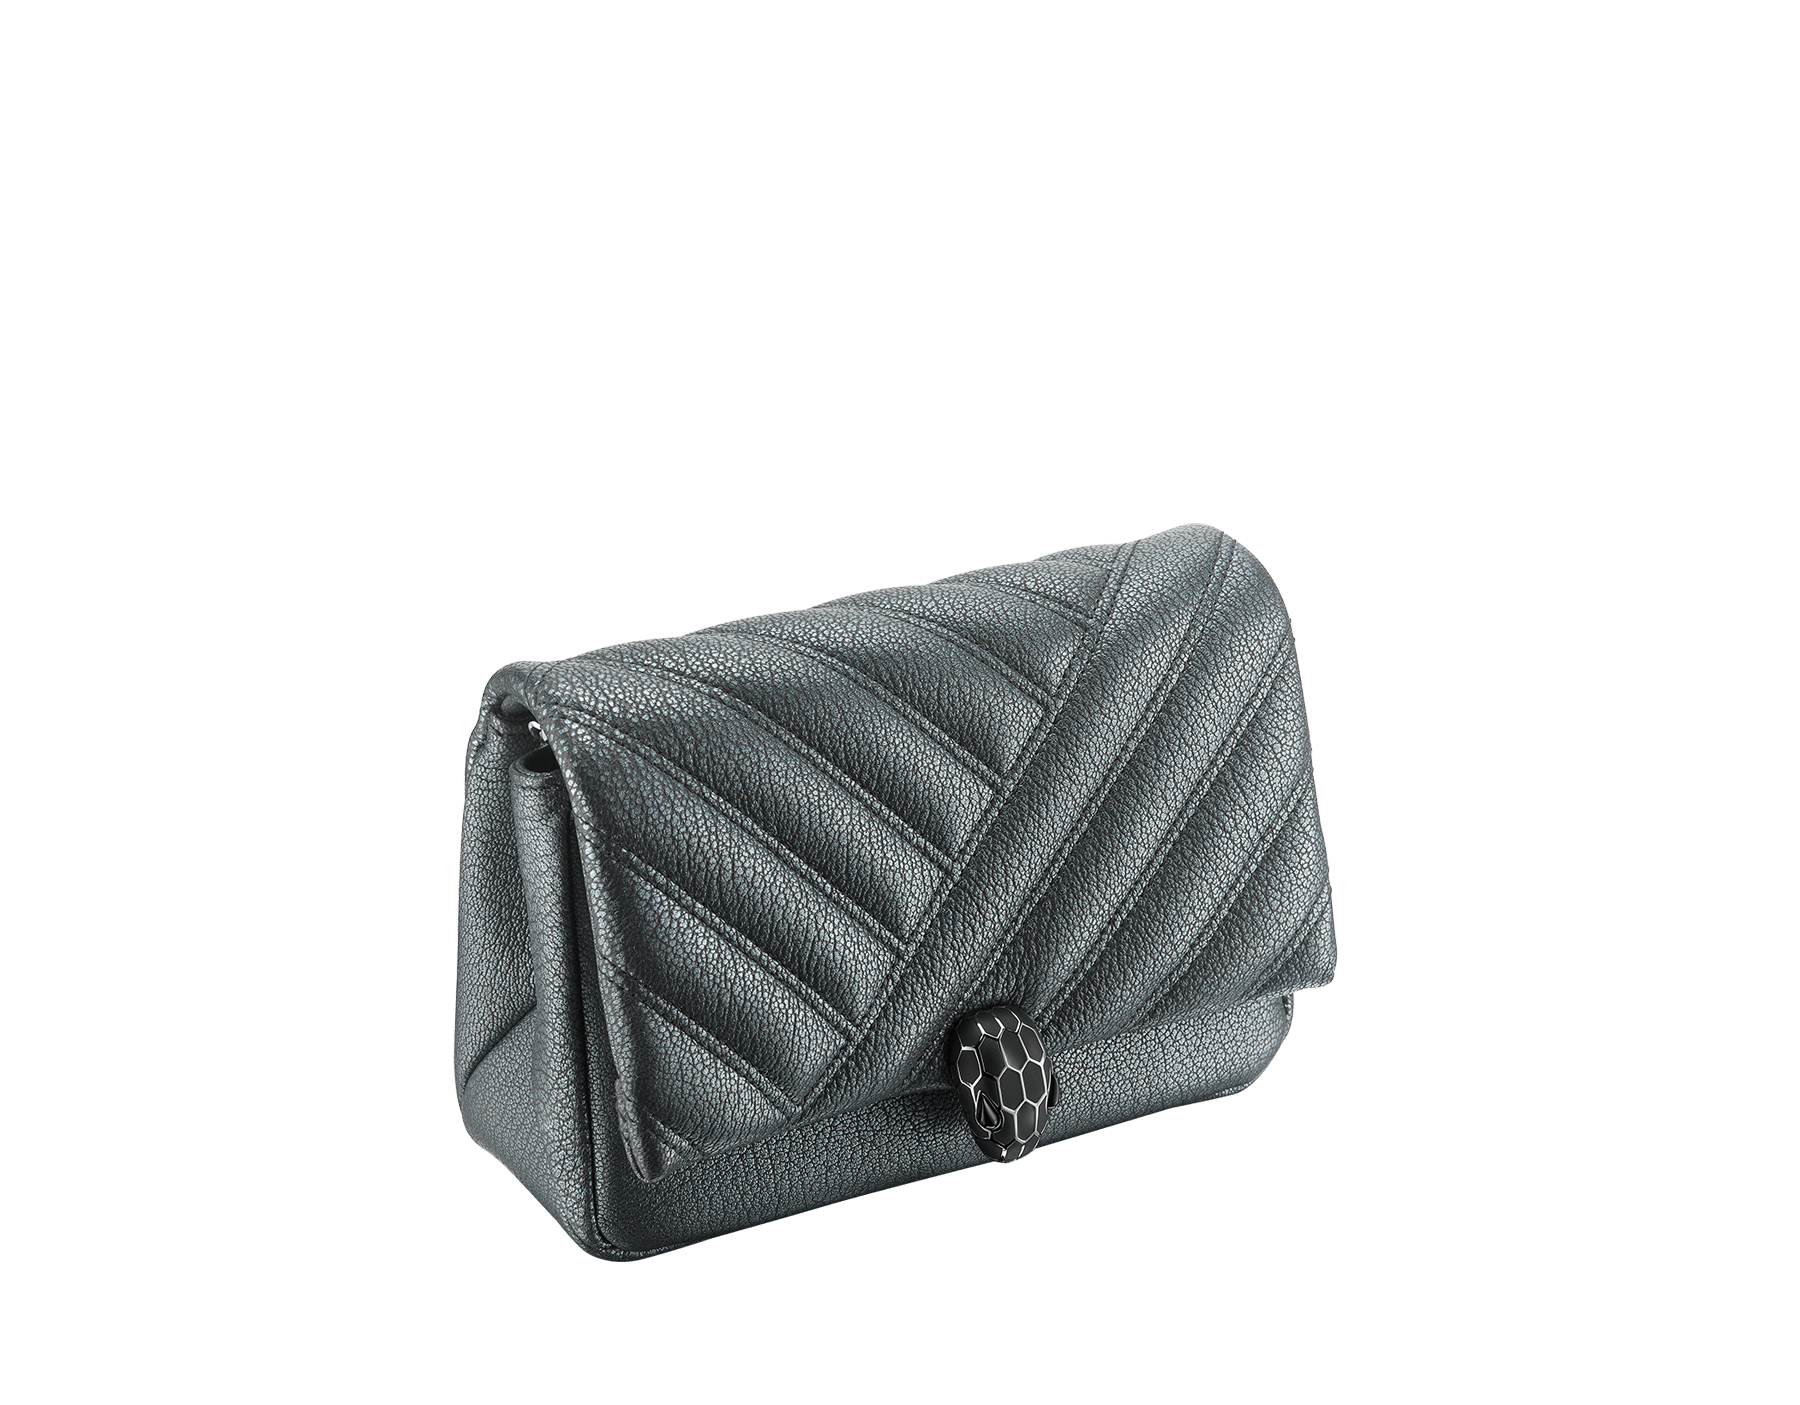 """Serpenti Cabochon"" crossbody mini bag in soft matelassé charcoal diamond goatskin with a pearled effect and a graphic motif. Brass palladium plated tempting snakehead closure in matte and shiny black enamel and black onyx eyes. 290276 image 2"